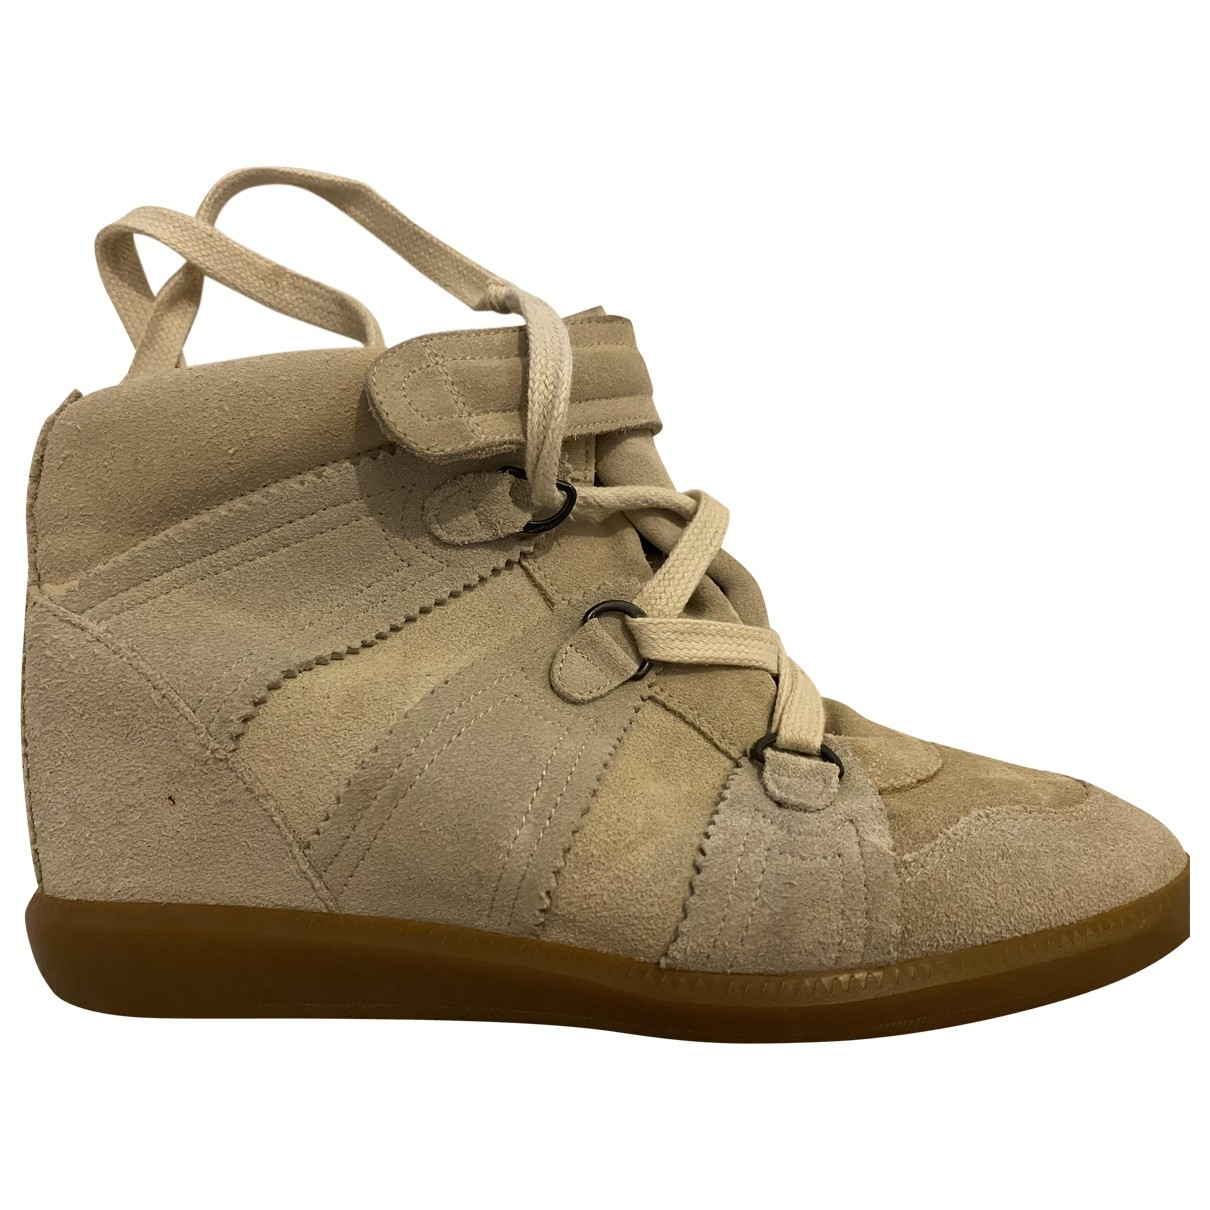 Isabel Marant Bobby Beige Suede Trainers for Women 40 EU